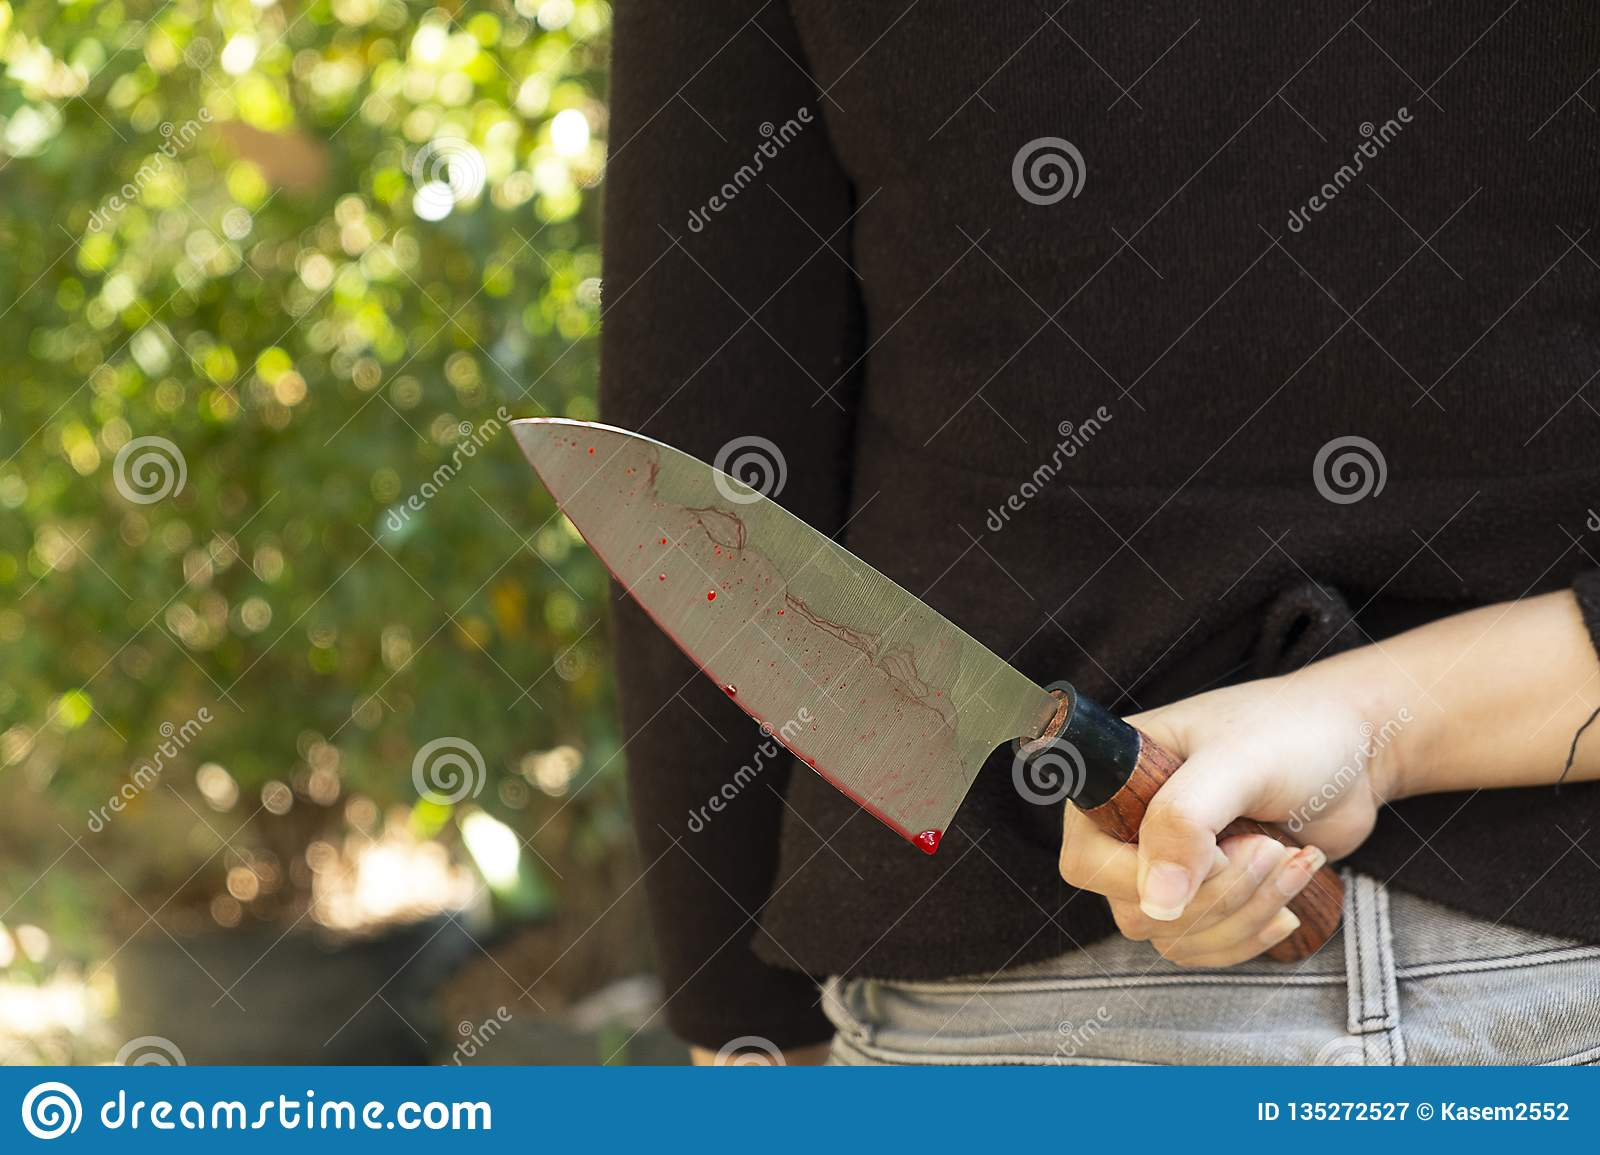 Woman hand holding a bloody knife on a black background,Social Violence Halloween Concept, photo of Serial diabolic killer, self